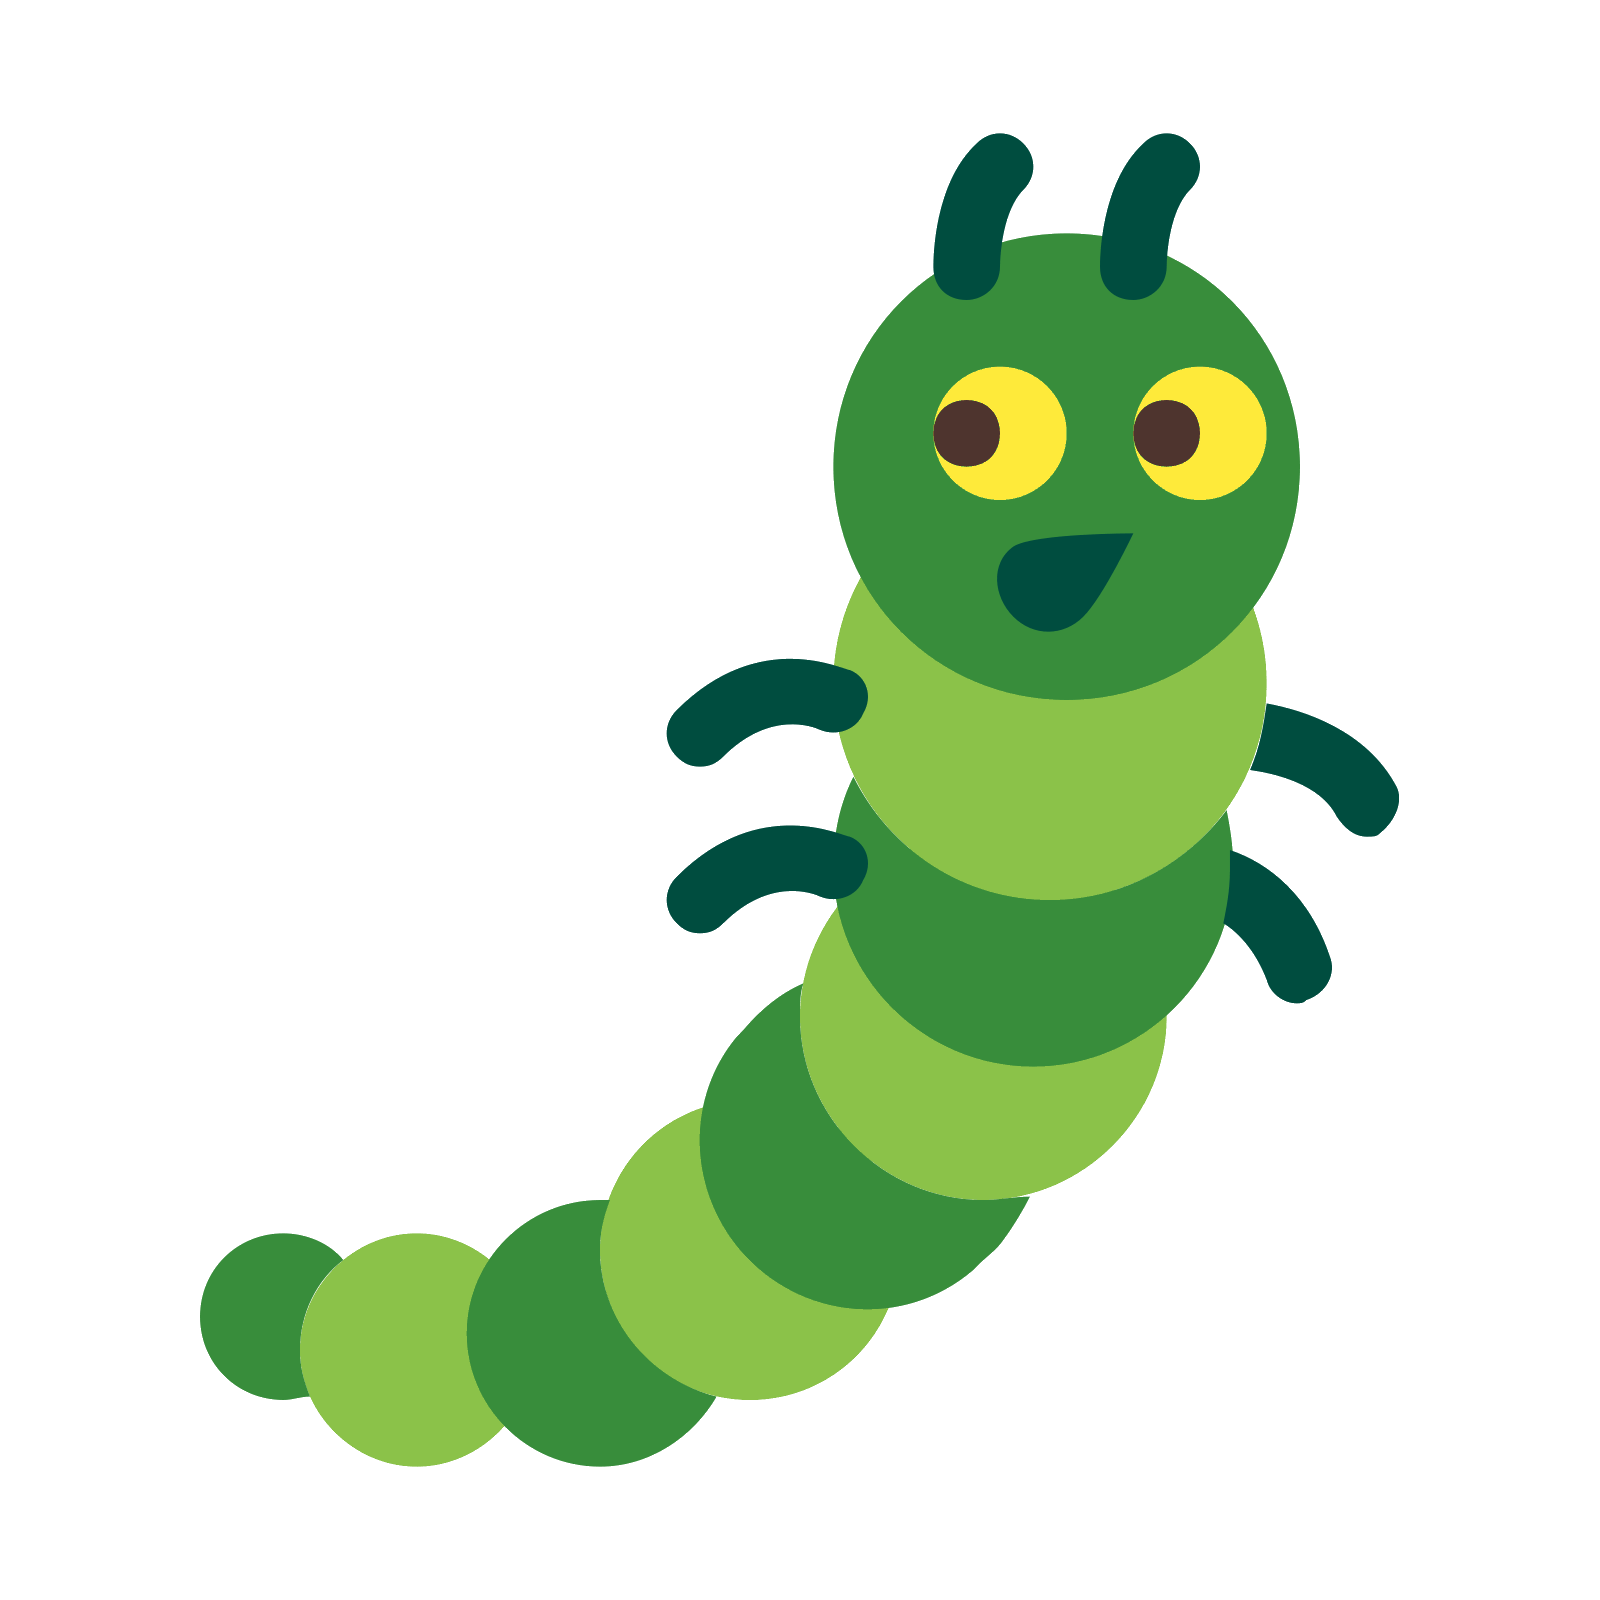 caterpillar icon png